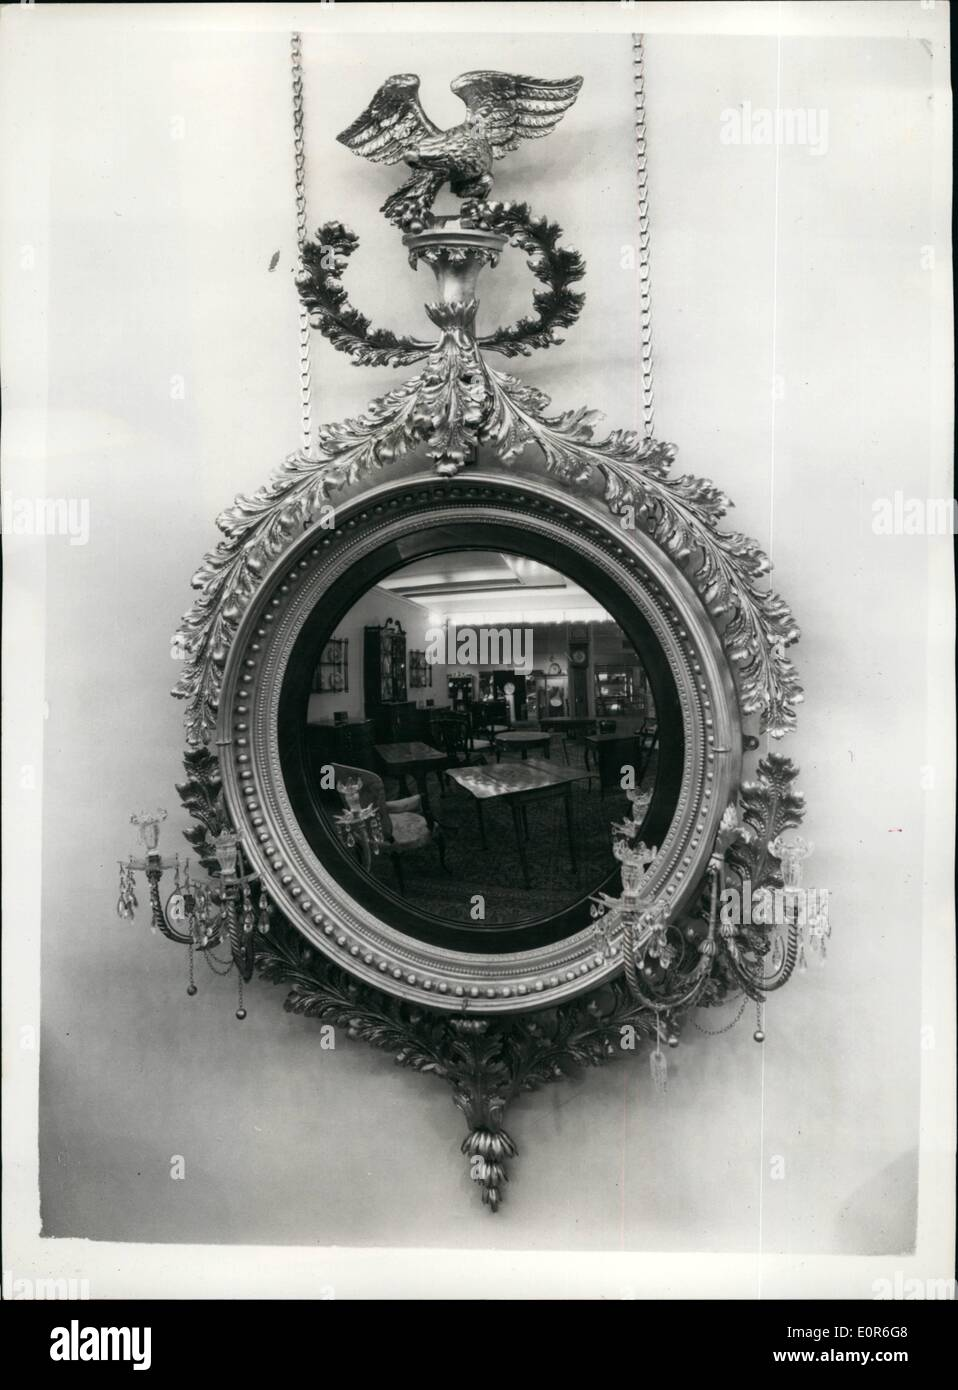 Jun. 06, 1958 - Press preview of the antique dealer's fair; A press preview was held today of the Antique Dealer's Fair and Exhibition, which will be opened by Princess Alexandra at Grosvenor House tomorrow. Photo Shows Some of the exhibits are seen reflected in this magnificent Convex Mirror, exhibited by M. Harris & Sons. - Stock Image